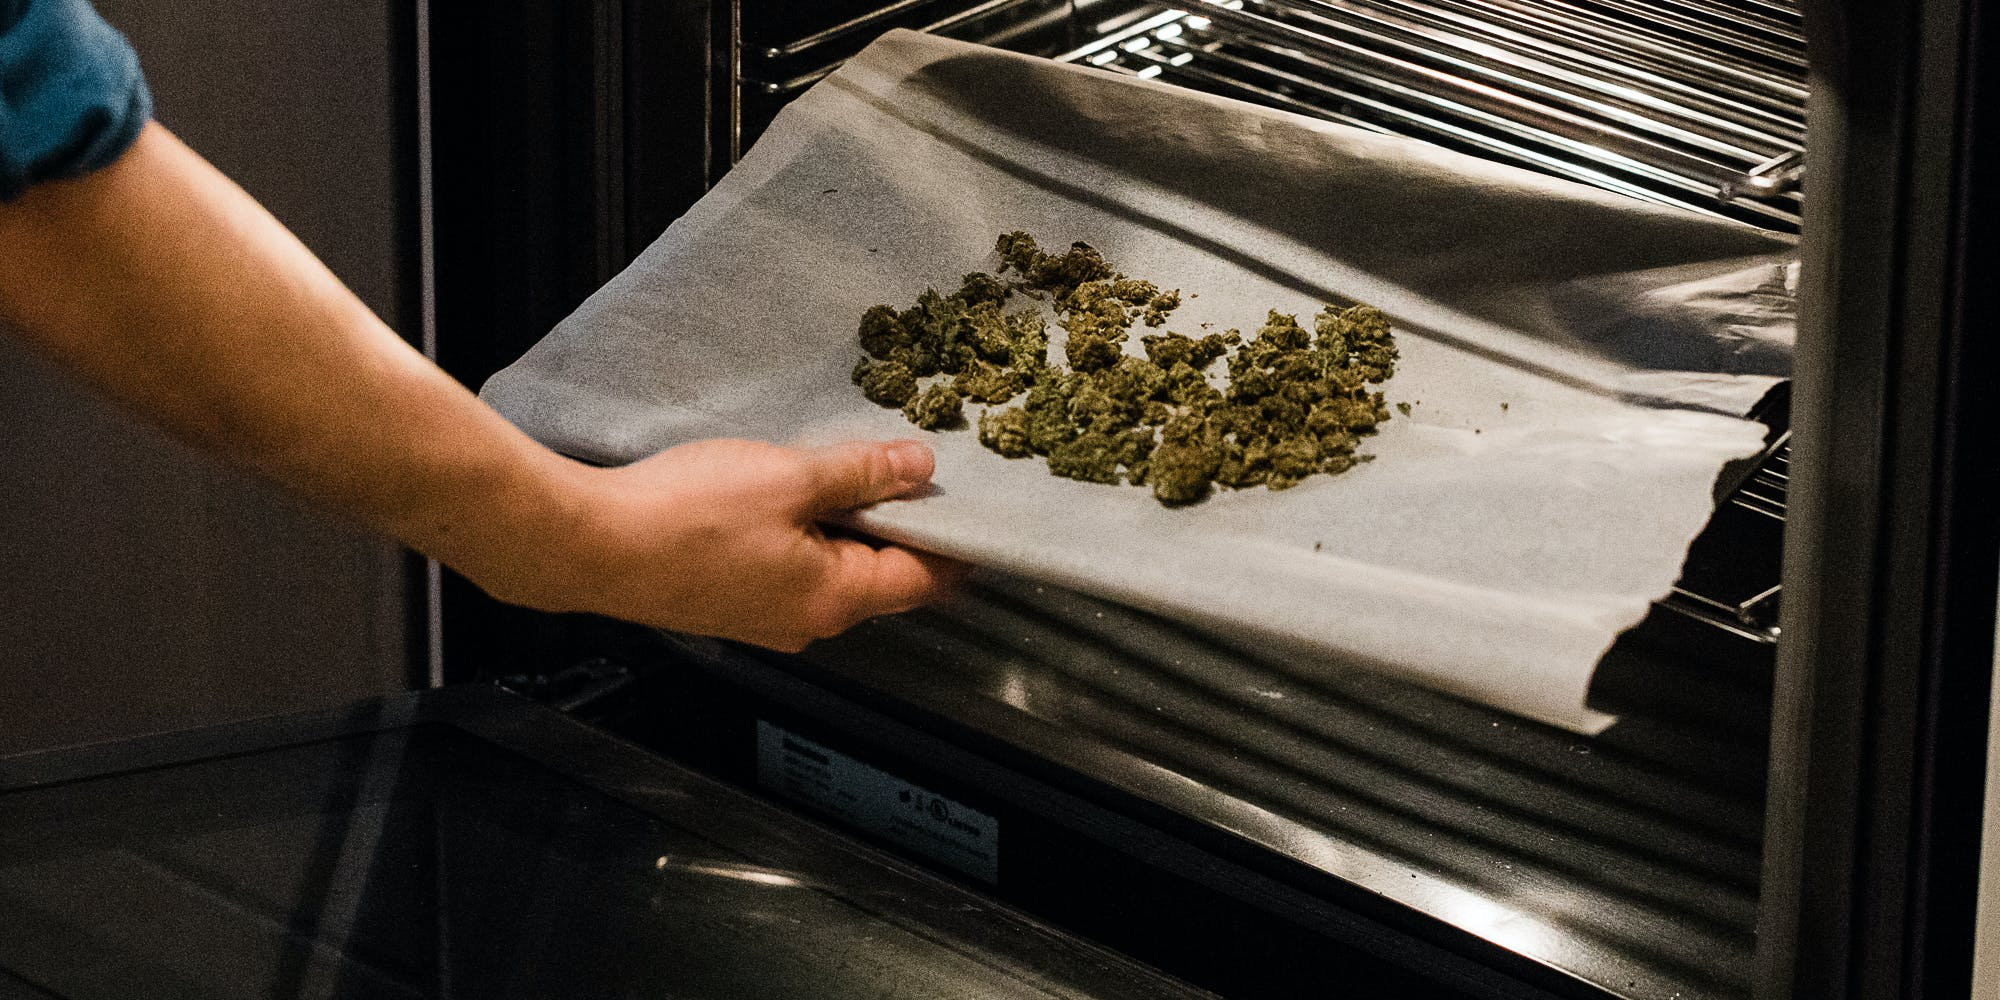 Cannabis flower on a cooking sheet being inserted into an oven. In this article, Herb explores if cooking with cannabis gets rid of the THC.